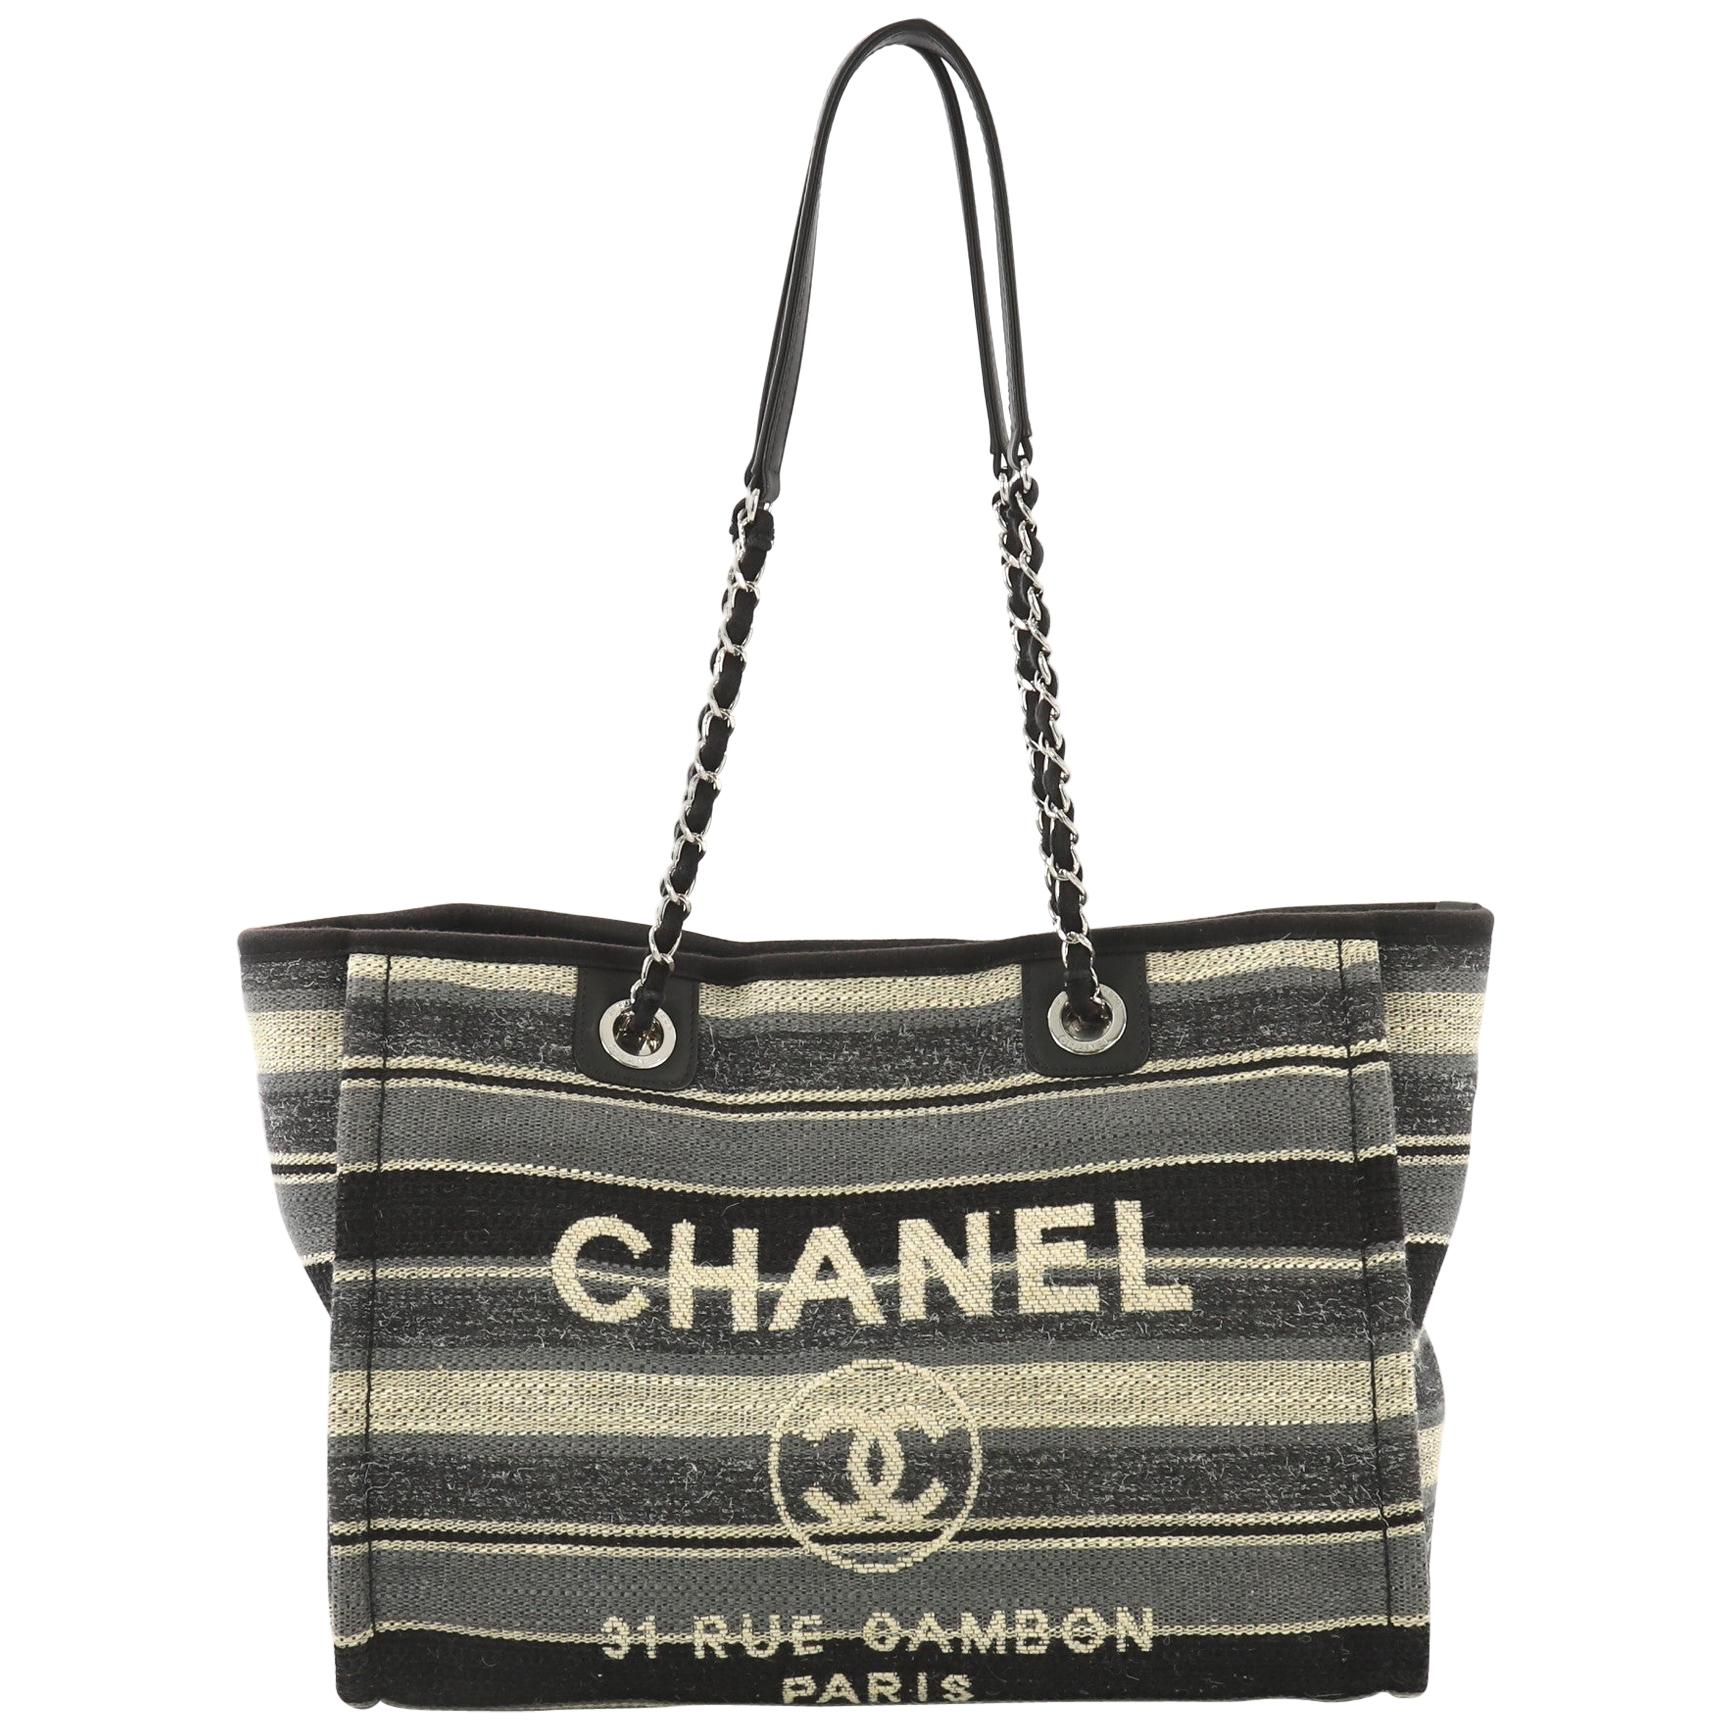 20f9d0310cf Small Tote Bags - 645 For Sale on 1stdibs